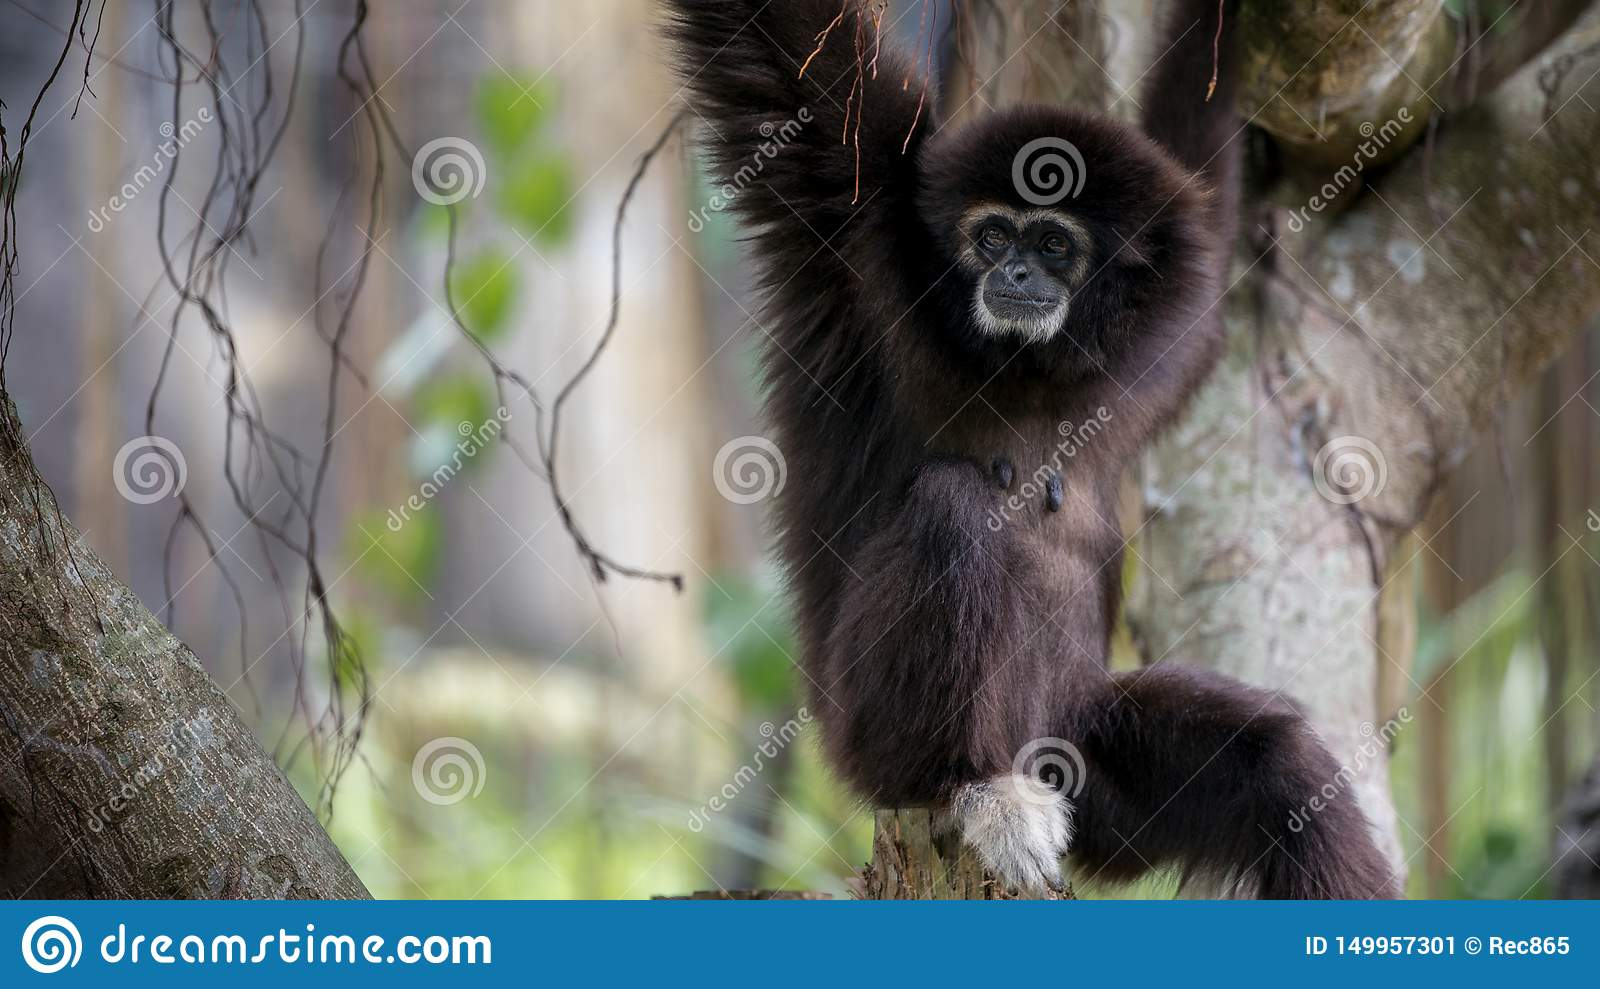 Lar Gibbon is resting on tree branches at the forest. Wild Hylobates Lar